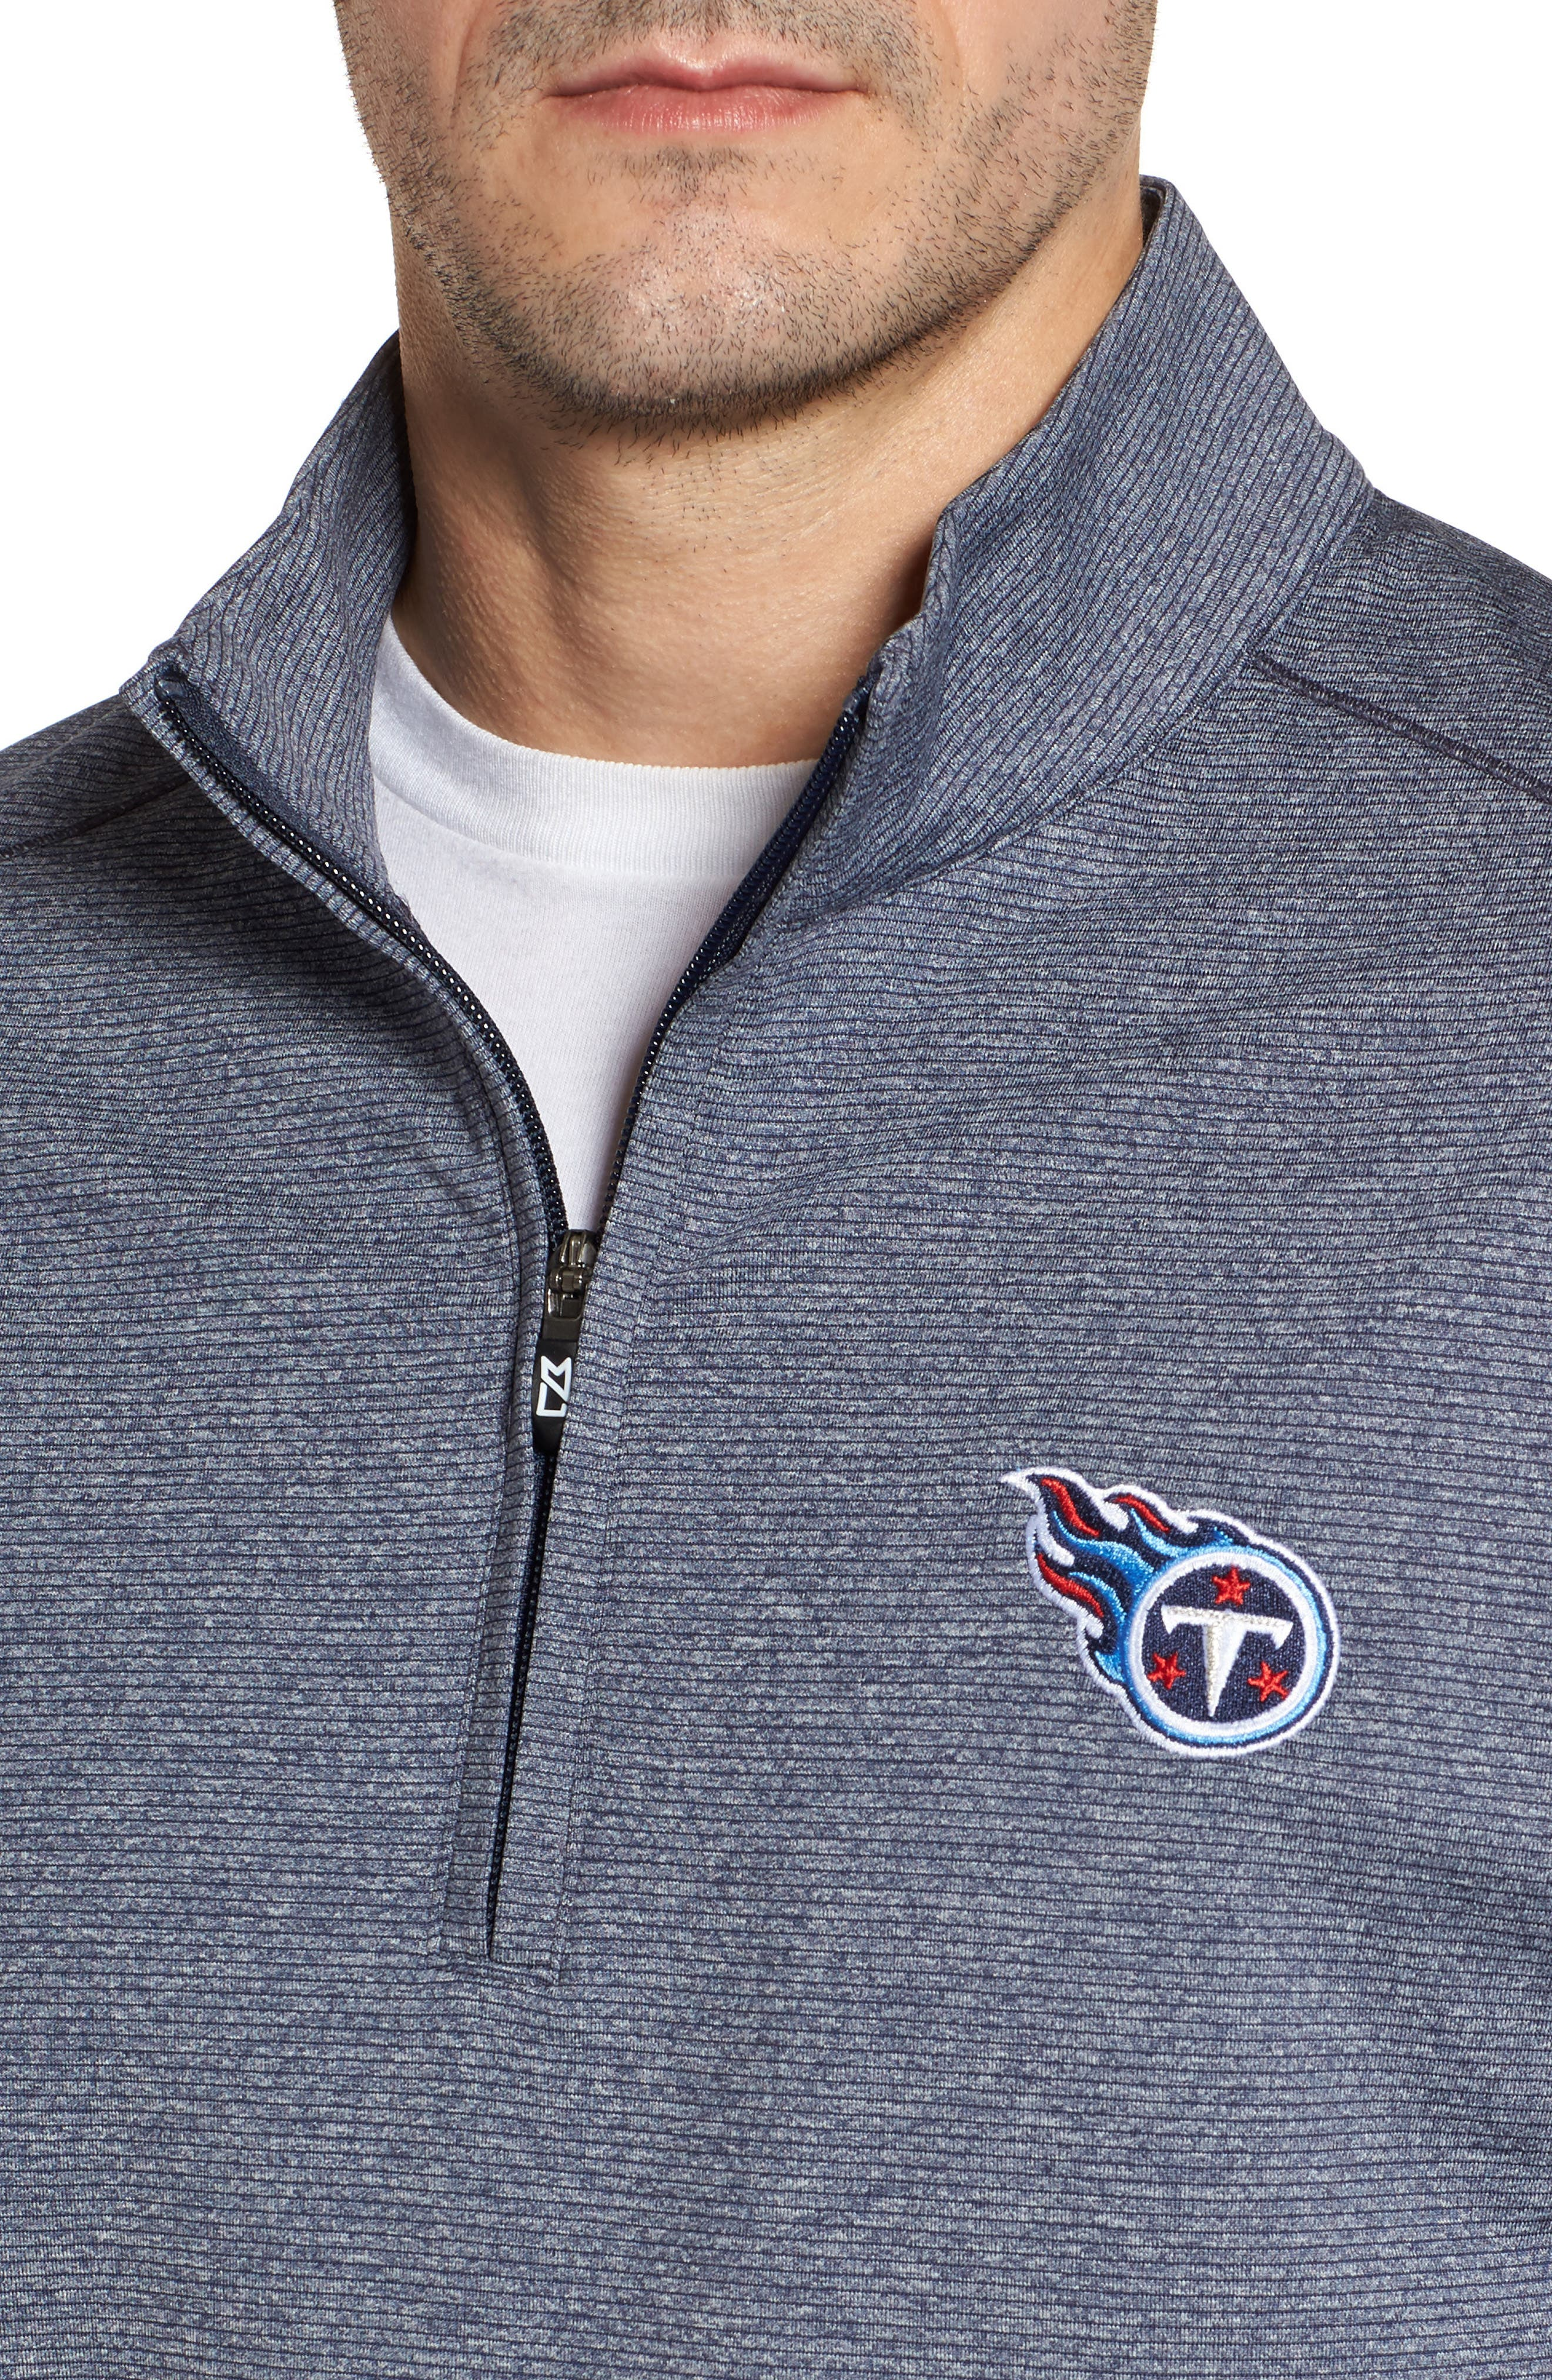 Alternate Image 4  - Cutter & Buck Shoreline - Tennessee Titans Half Zip Pullover